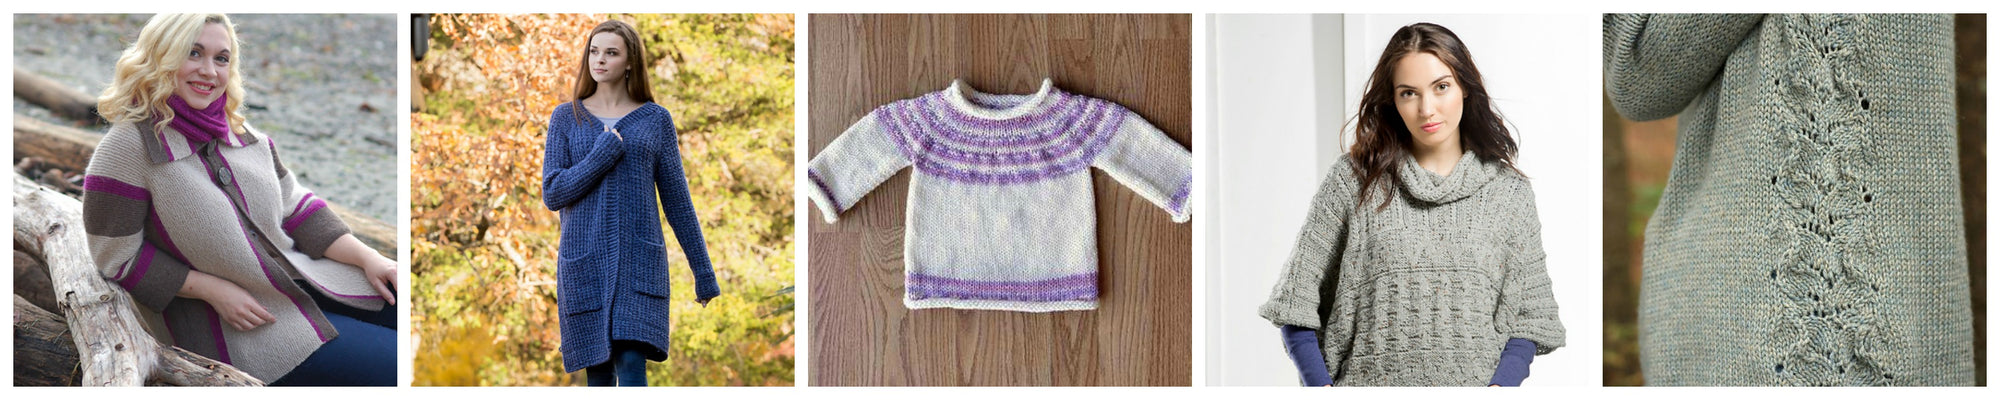 Sweater Weather: 5 Free Knitting Patterns